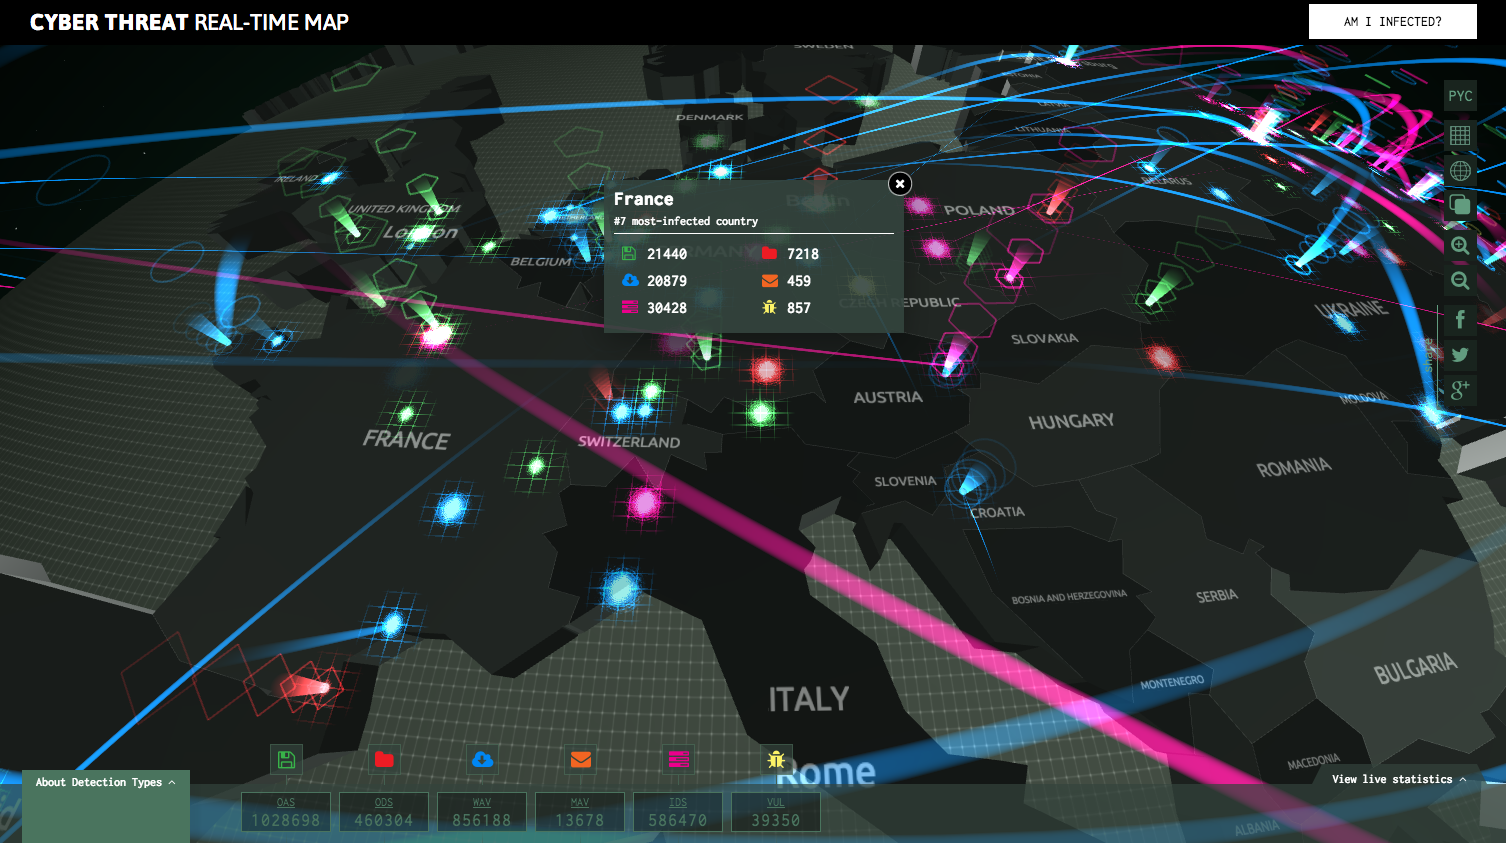 Carte des Cyber-attaques (Kaspersky Lab)